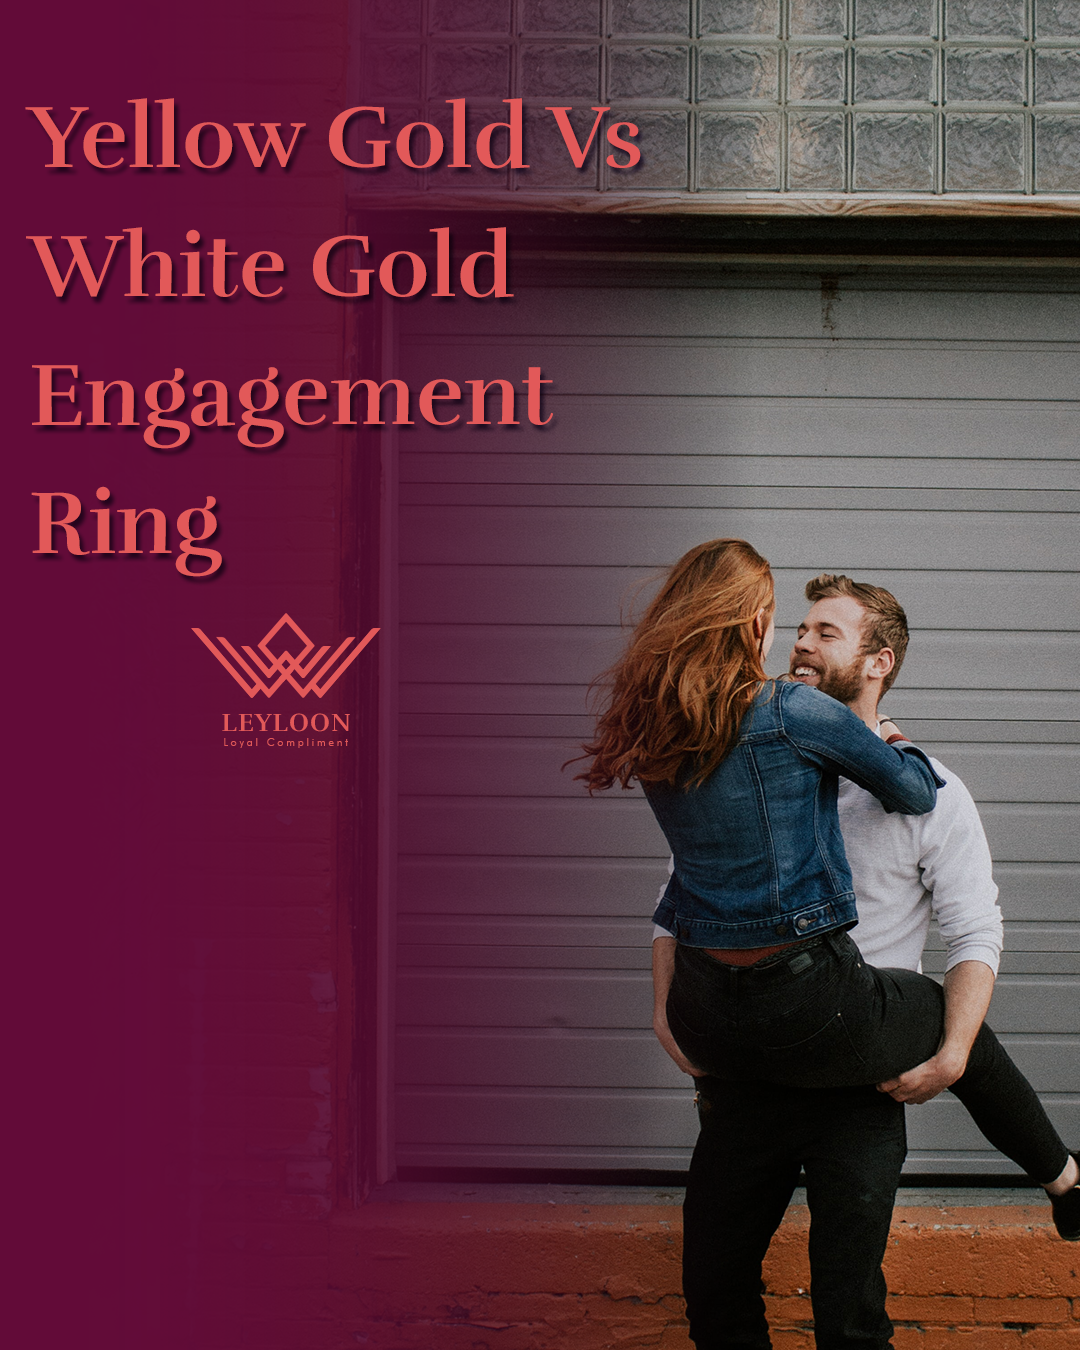 Yellow Gold Vs White Gold Engagement Ring